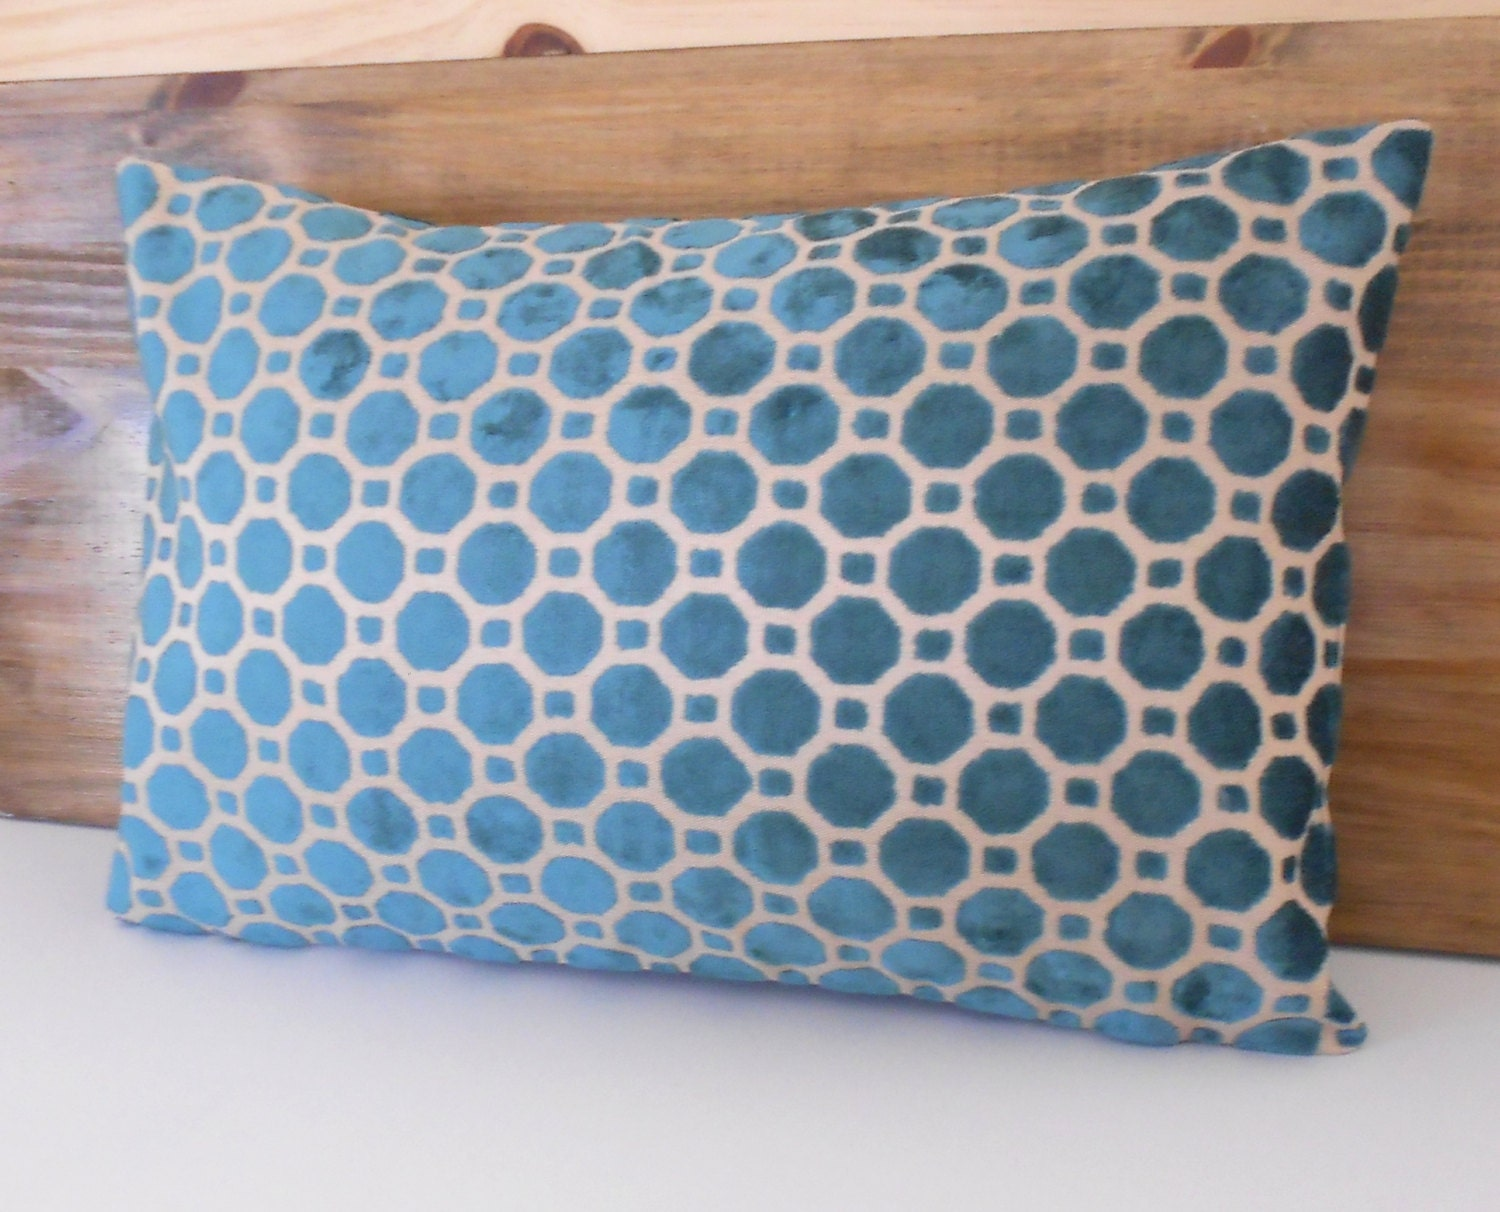 Decorative Pillows In Turquoise : Dark turquoise velvet decorative pillow cover